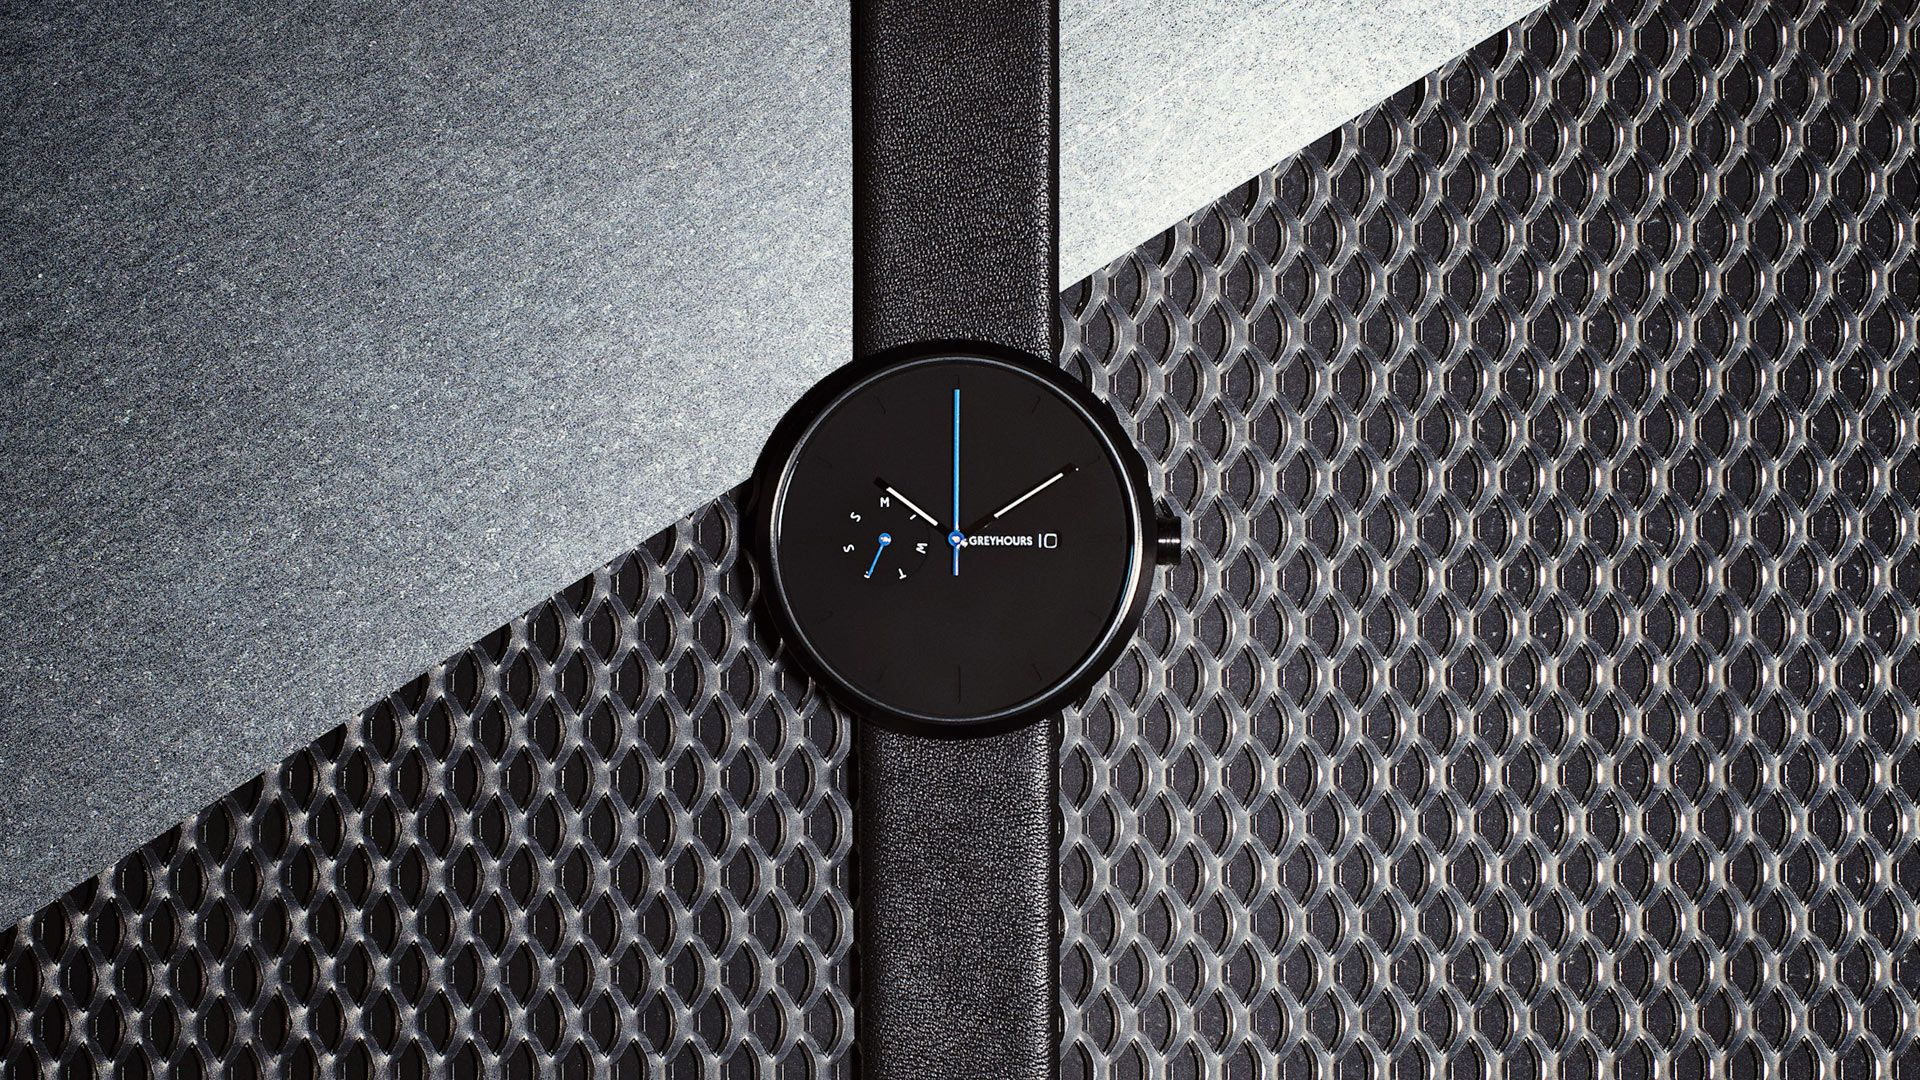 GREYHOURS / ESSENTIAL Black: First model from GREYHOURS, this Black ESSENTIAL illustrates the influence of Bauhaus on Julien Gueuning, the designer.